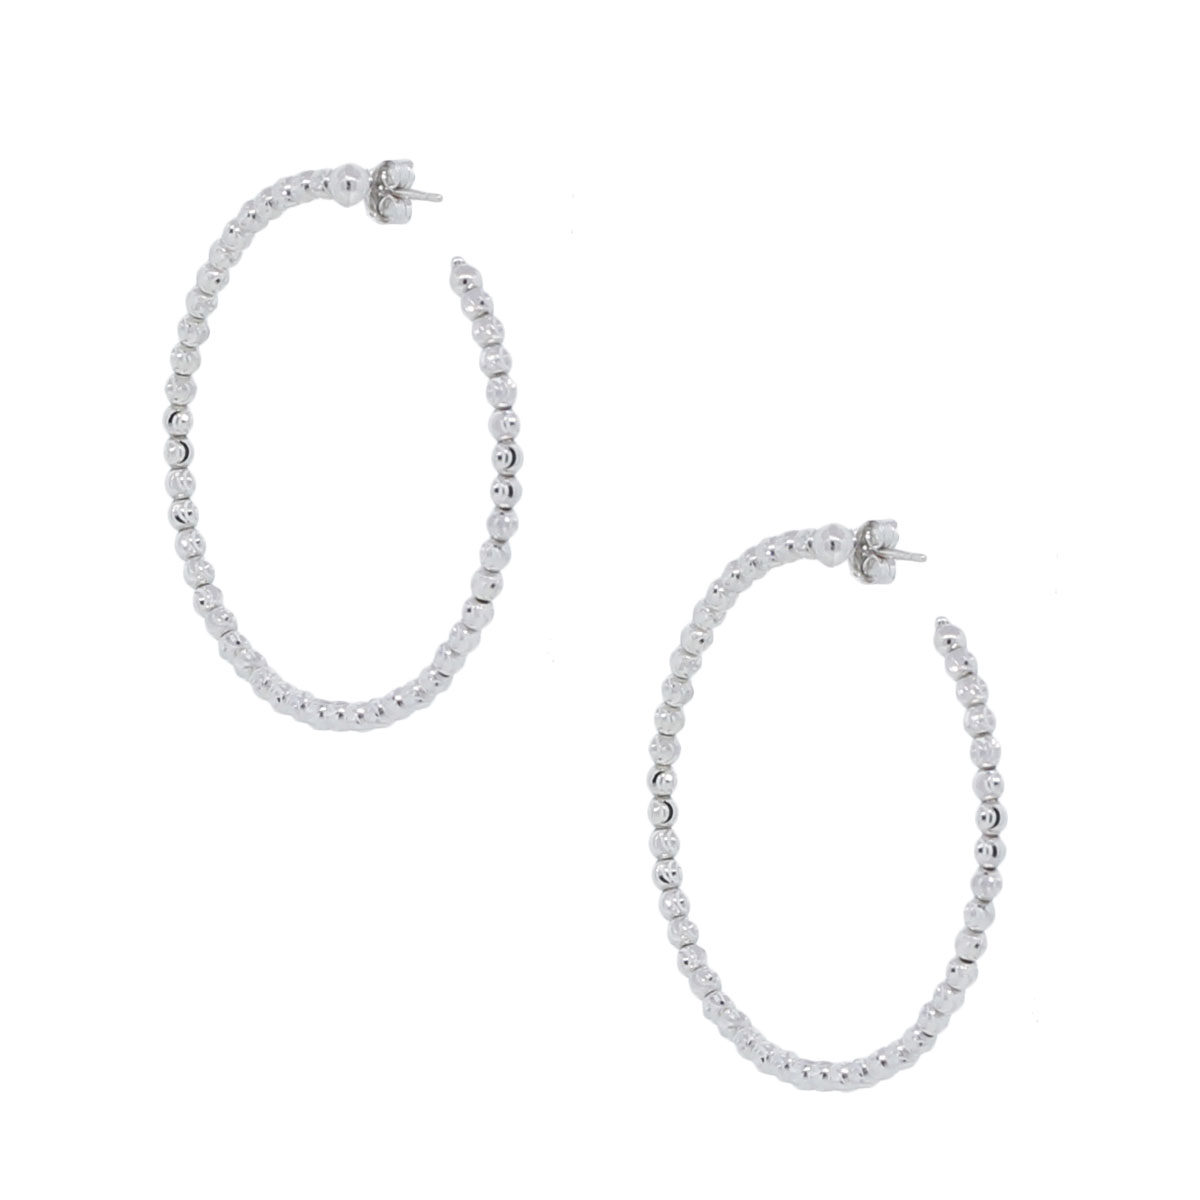 Officina Bernardi SS & Platinum Rodium Earrings